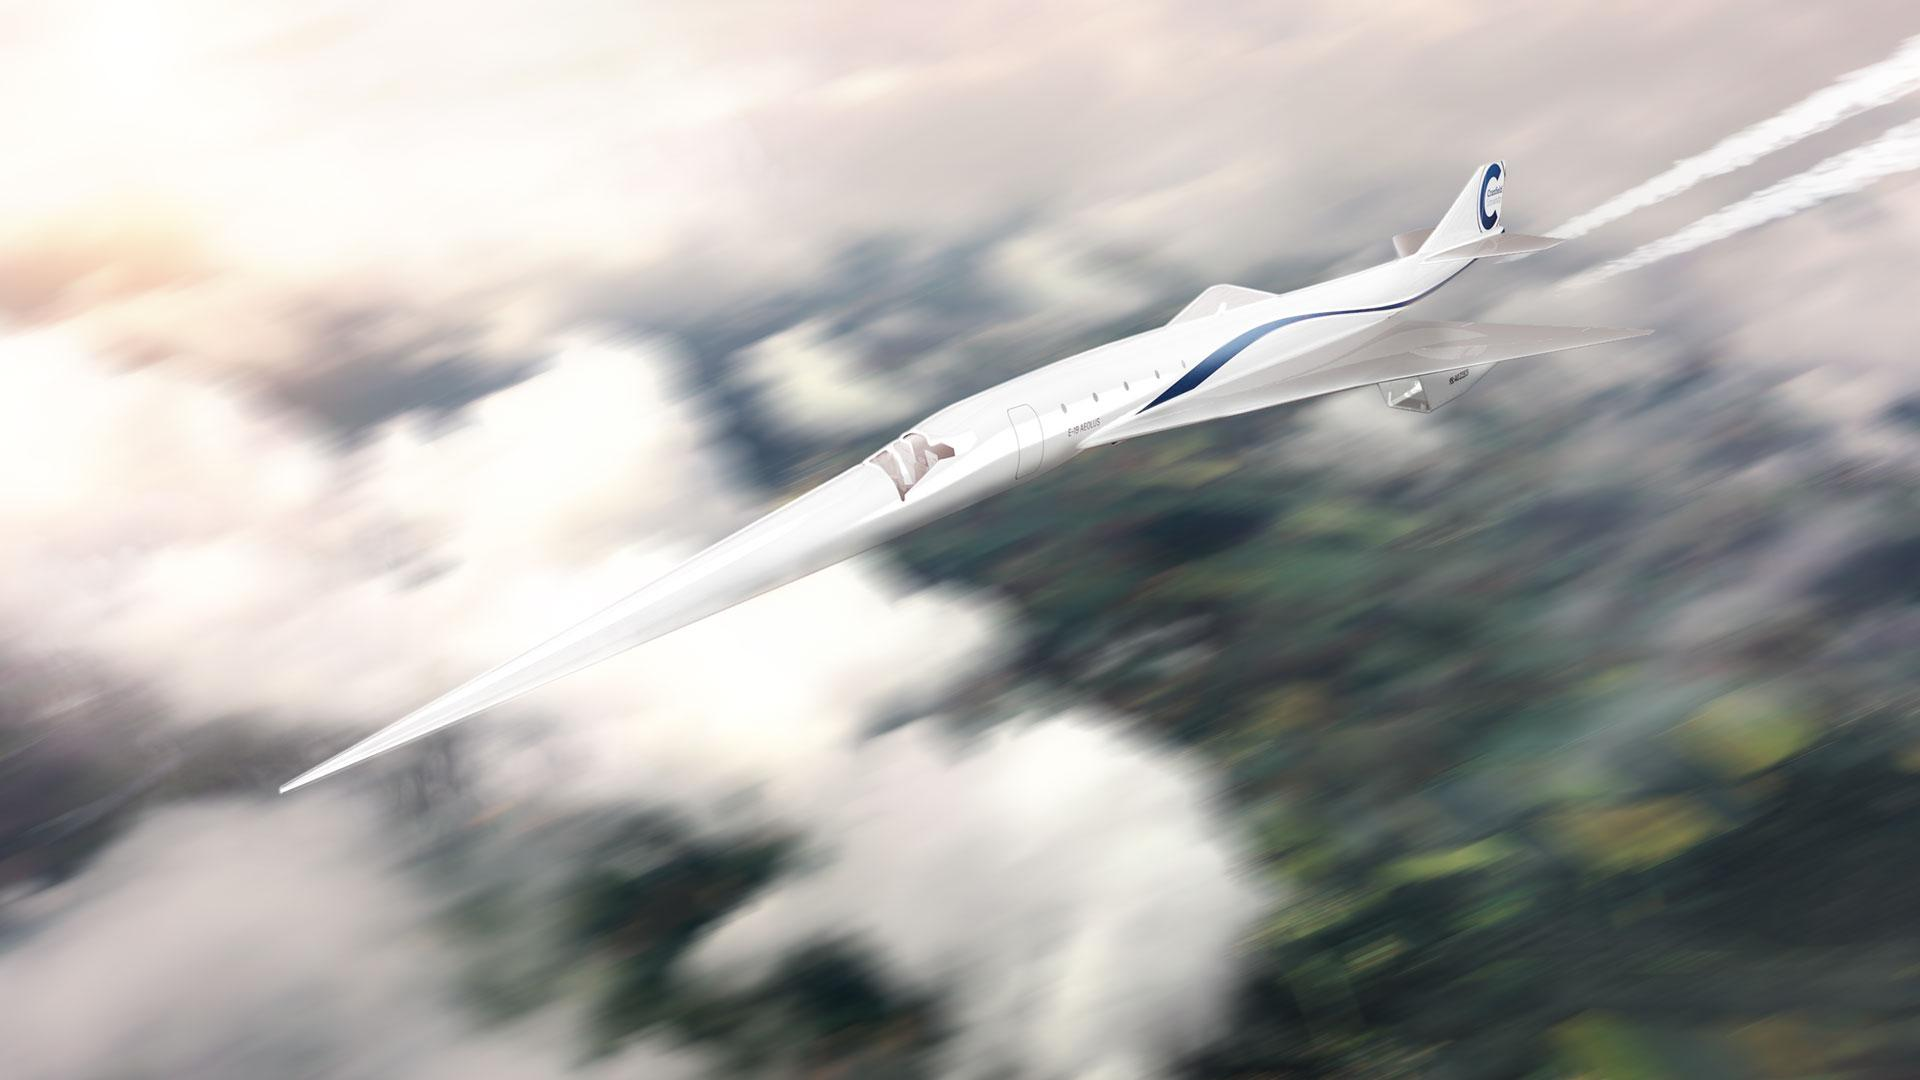 Supersonic aircraft of the future